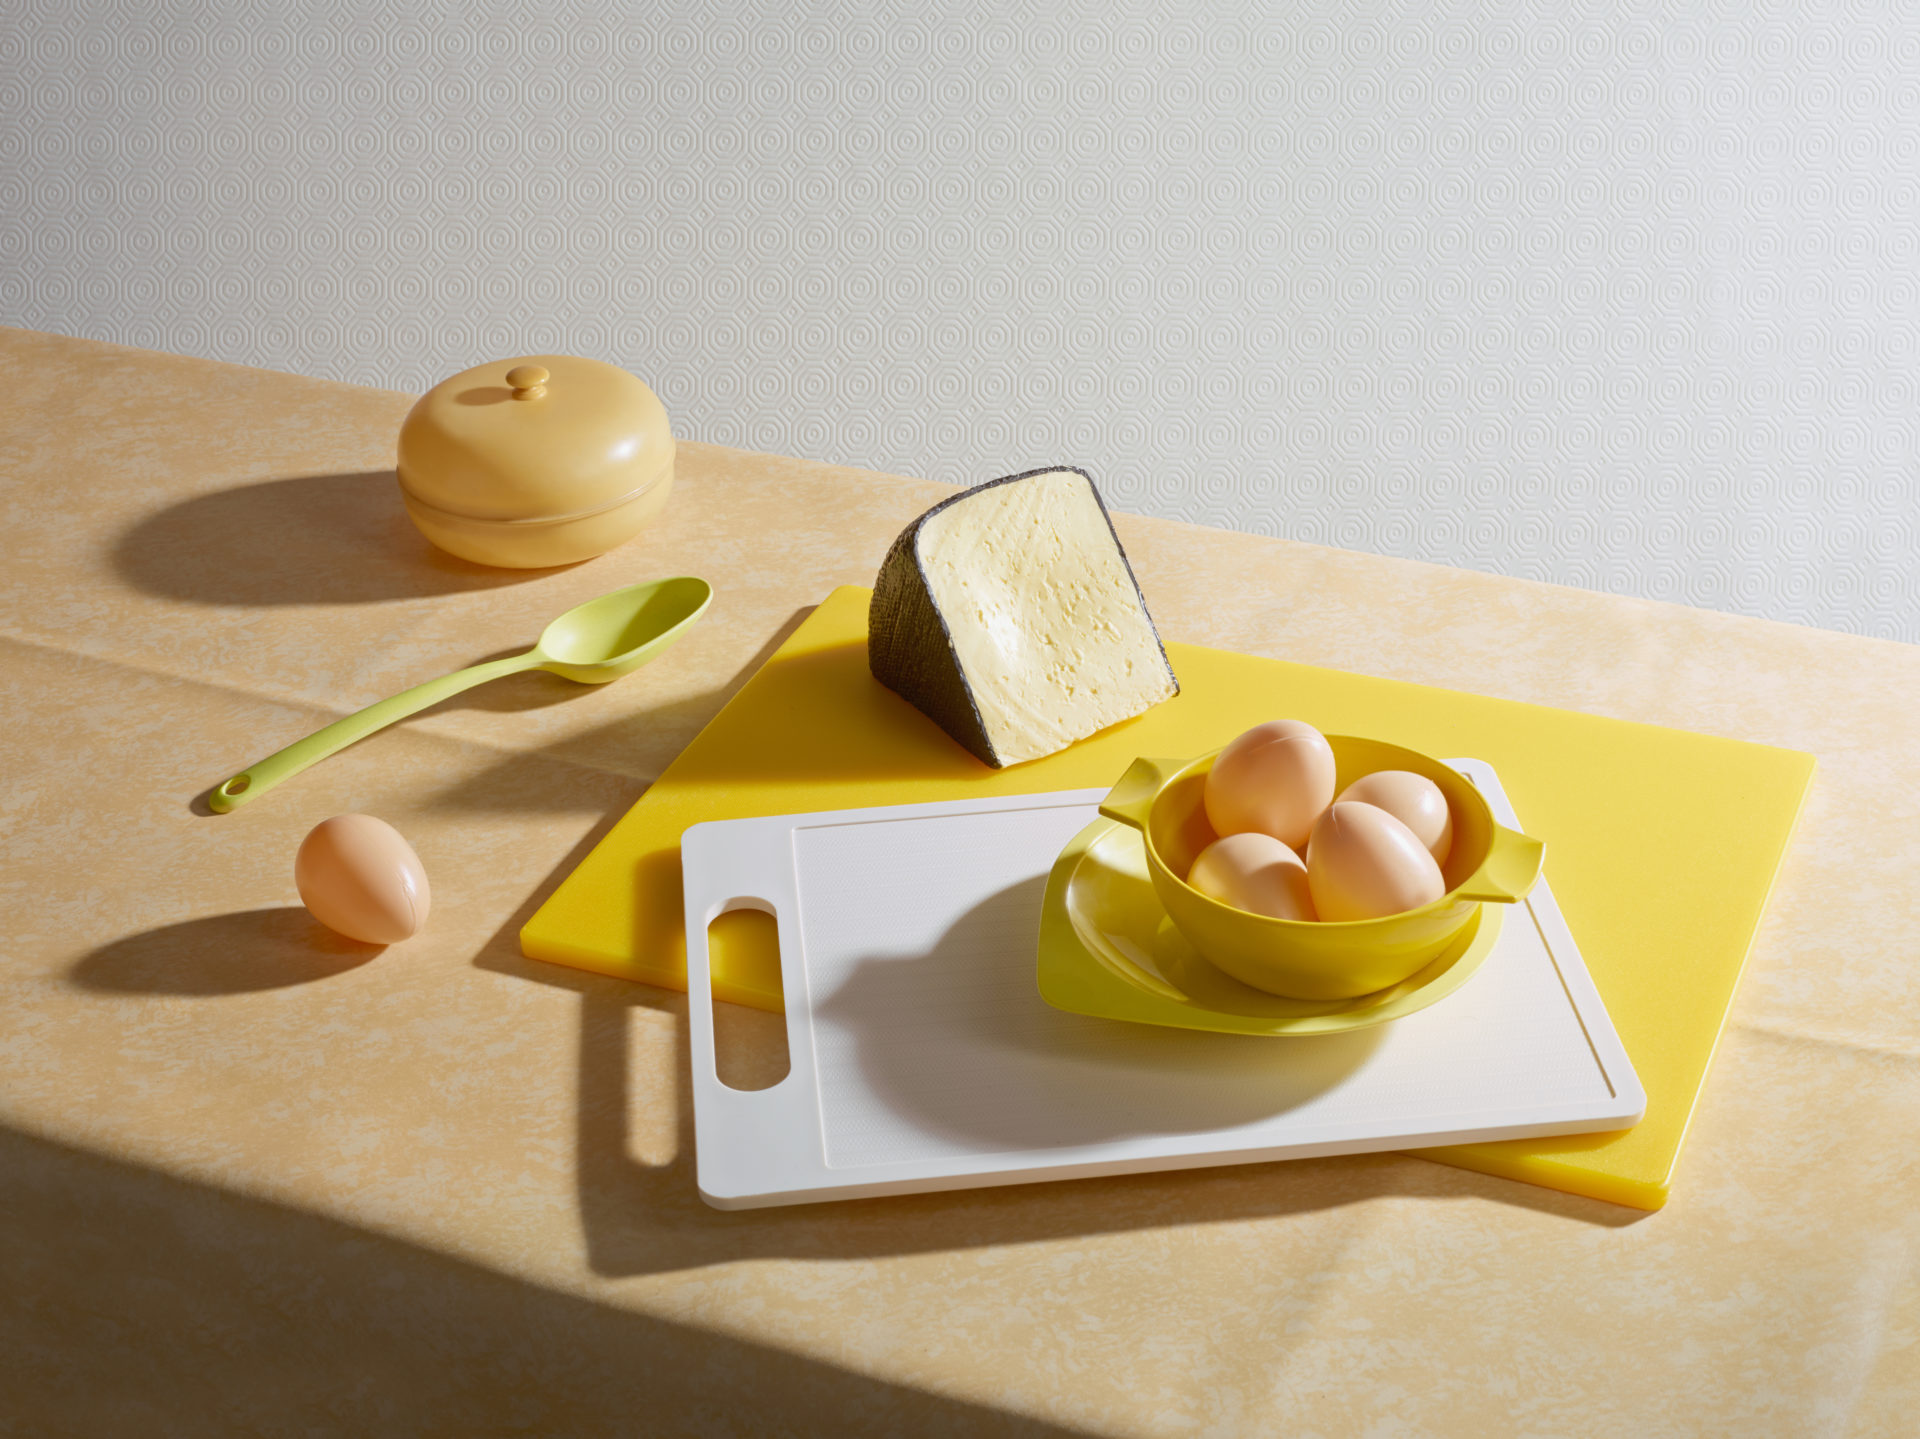 – Shaw & Shaw Photography – Shaw and Shaw Photographers Manchester – advertising photographers – graphic image – Plastic Egg And Cheese